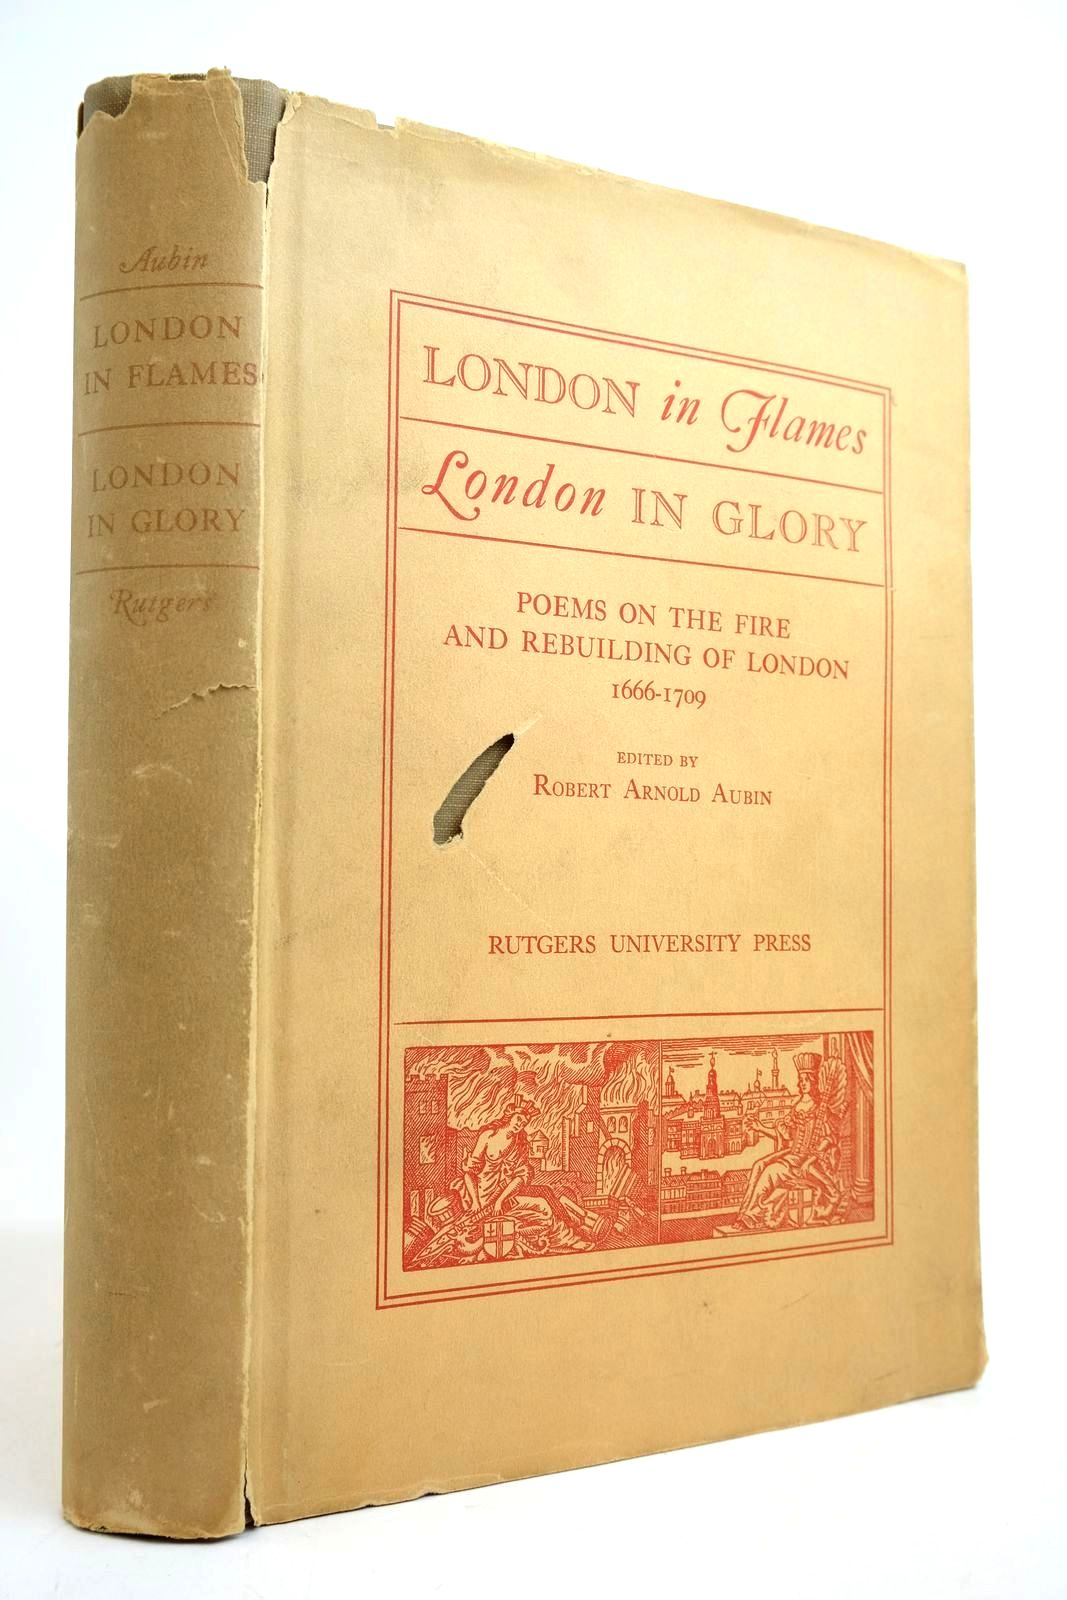 Photo of LONDON IN FLAMES LONDON IN GLORY written by Aubin, Robert Arnold published by Rutgers University Press (STOCK CODE: 2134329)  for sale by Stella & Rose's Books